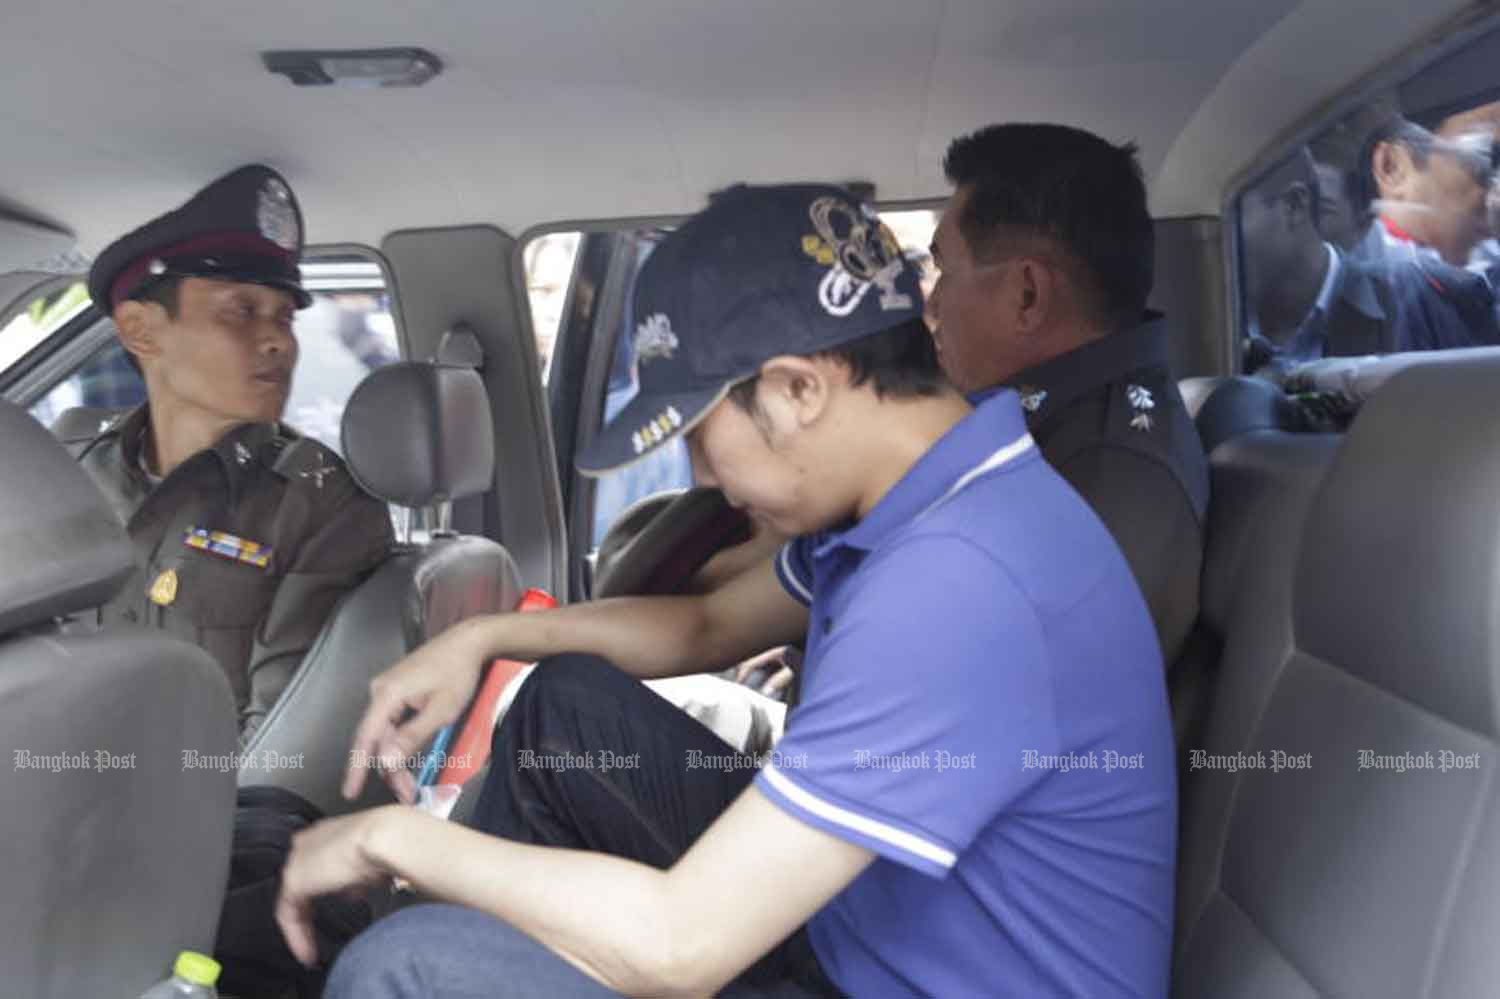 Vorayuth warrant still in place